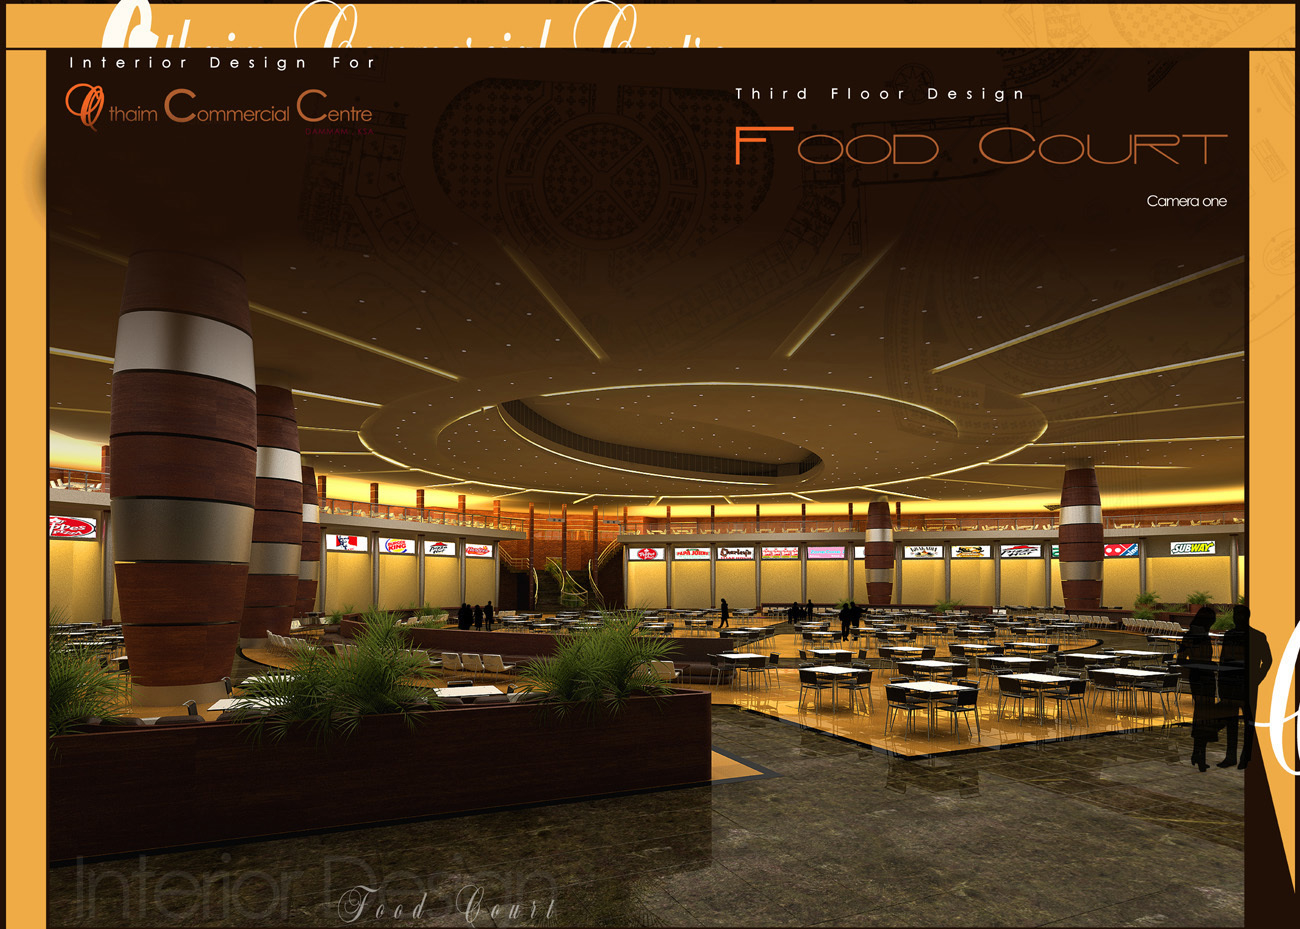 Shdesigner food court 1 9c8b8501 qr89